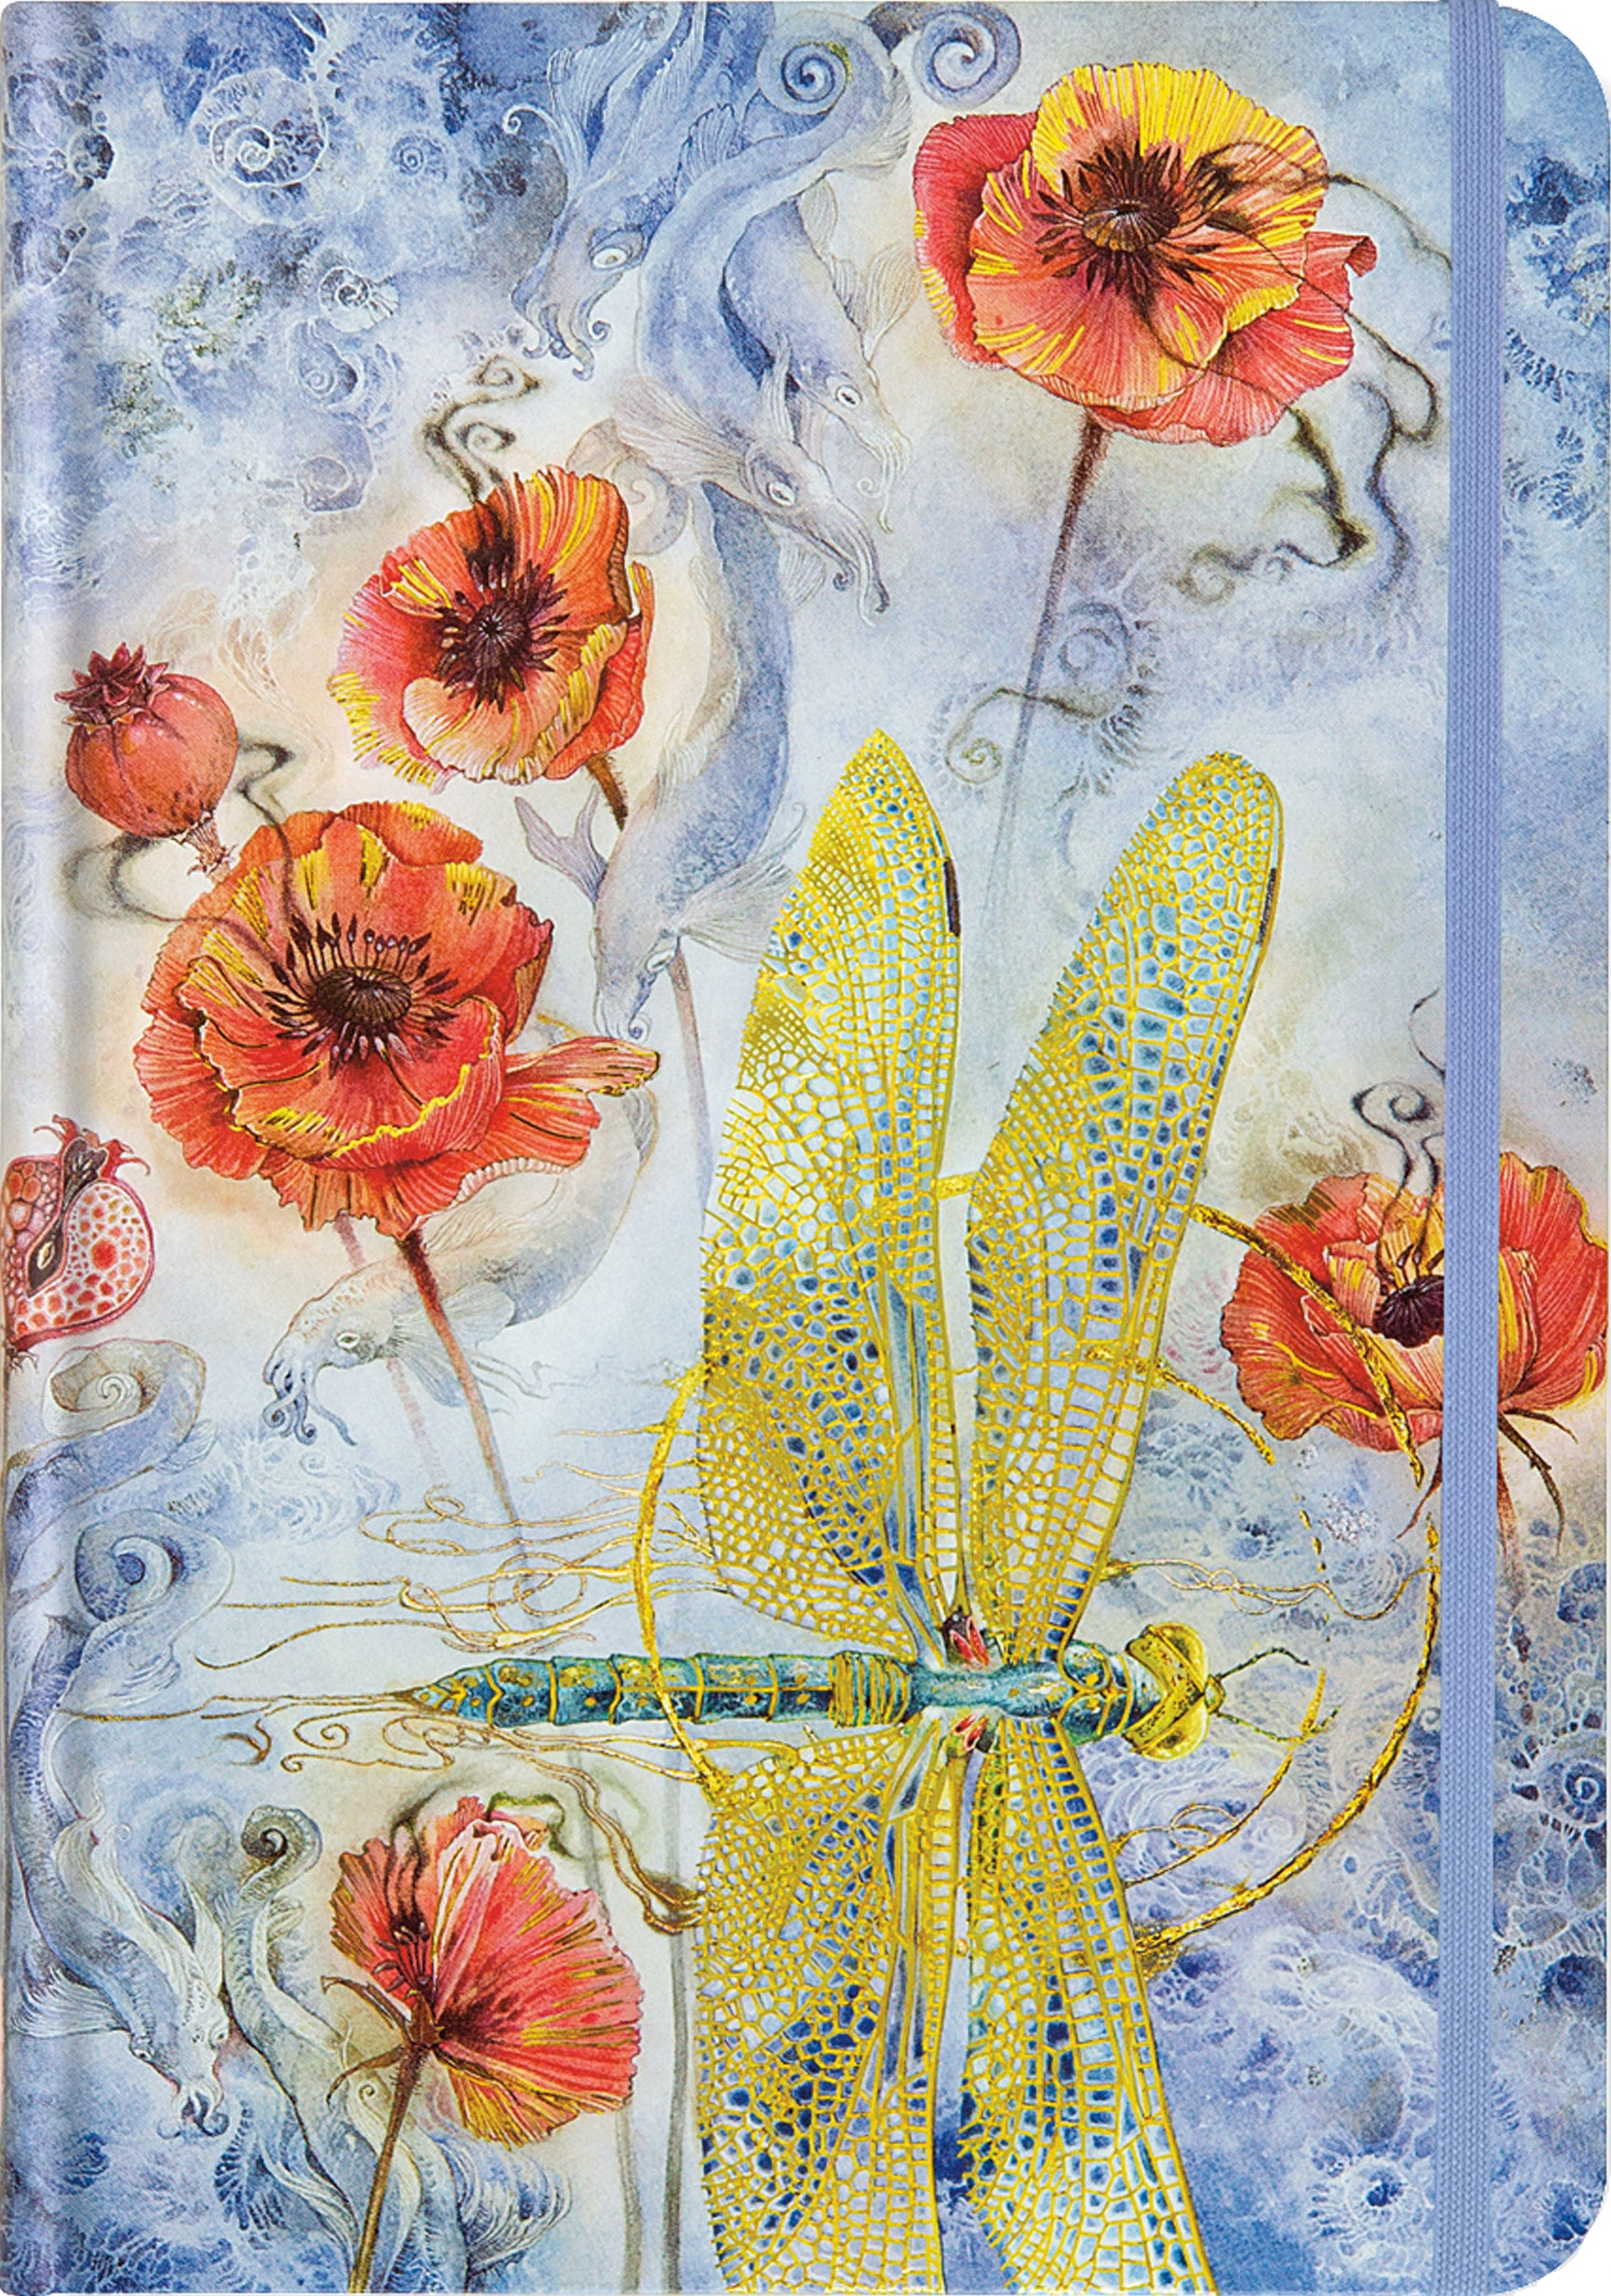 Indigo Dragonfly Journal - Heart of the Home PA